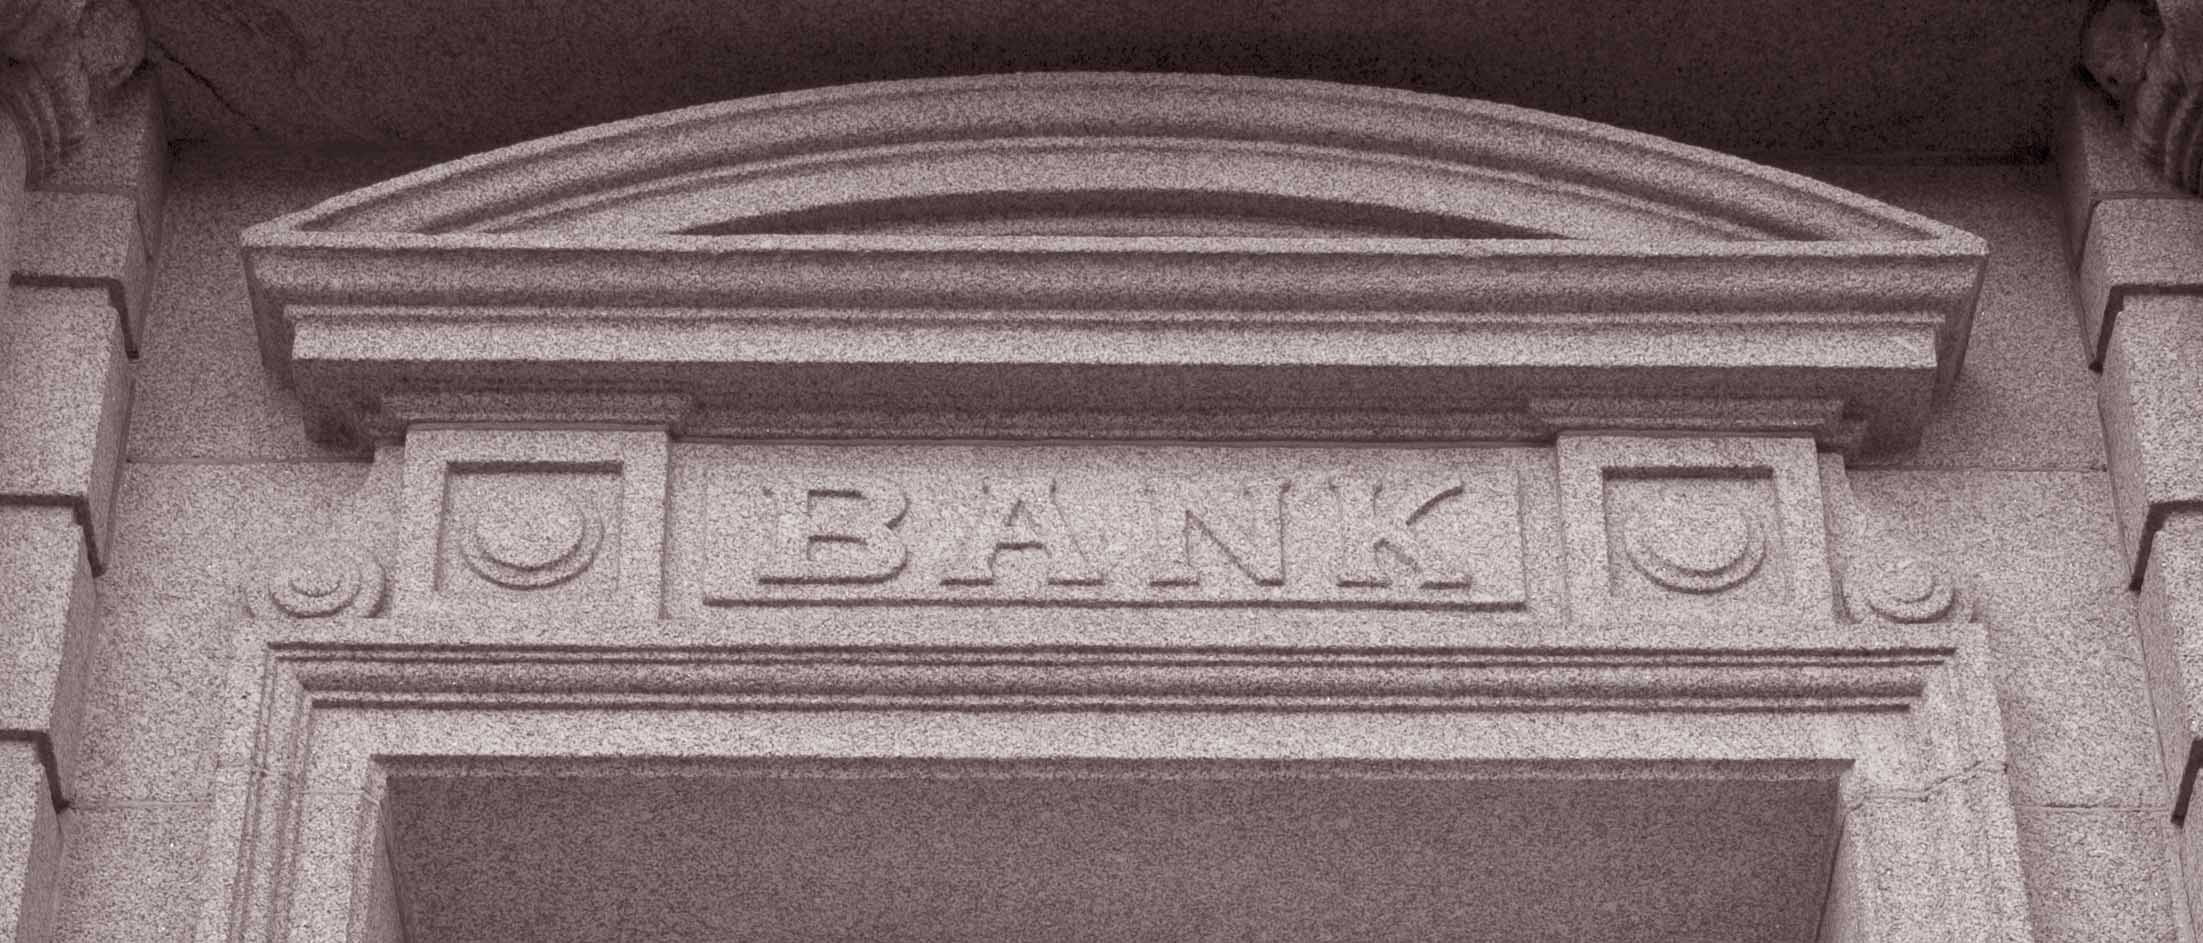 Bank sign image